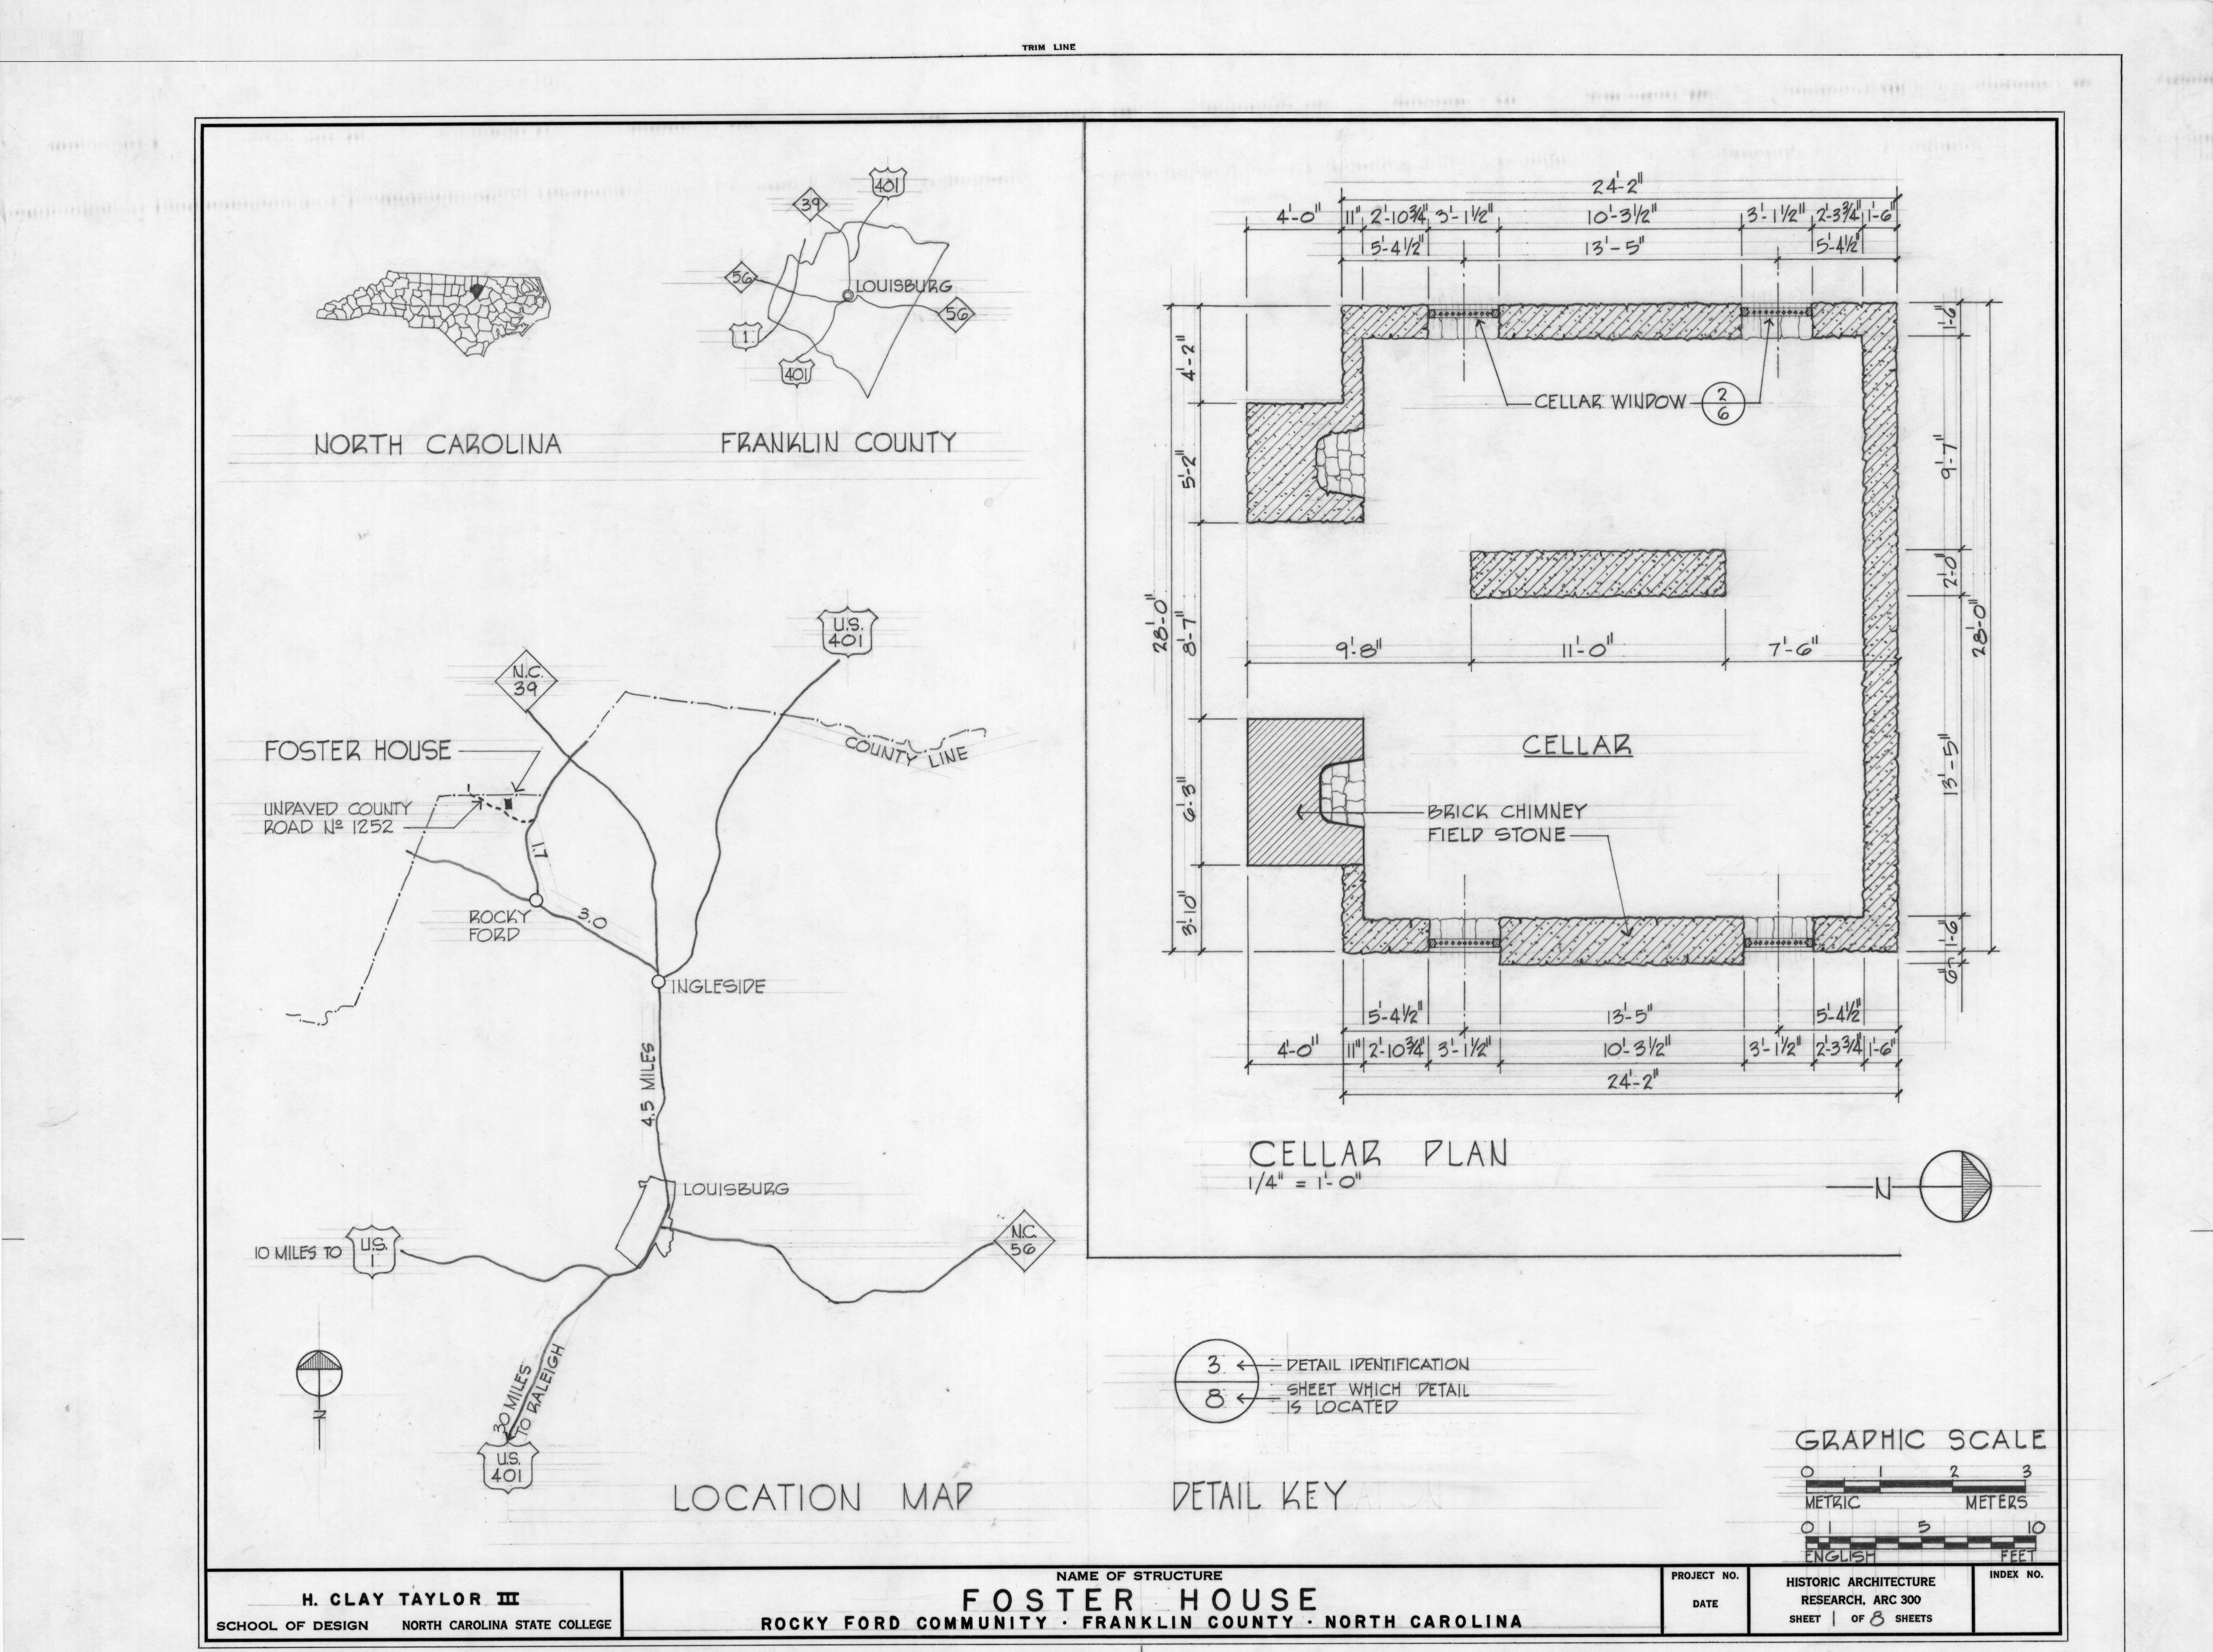 House Location Map Pan Zoom Location Map And